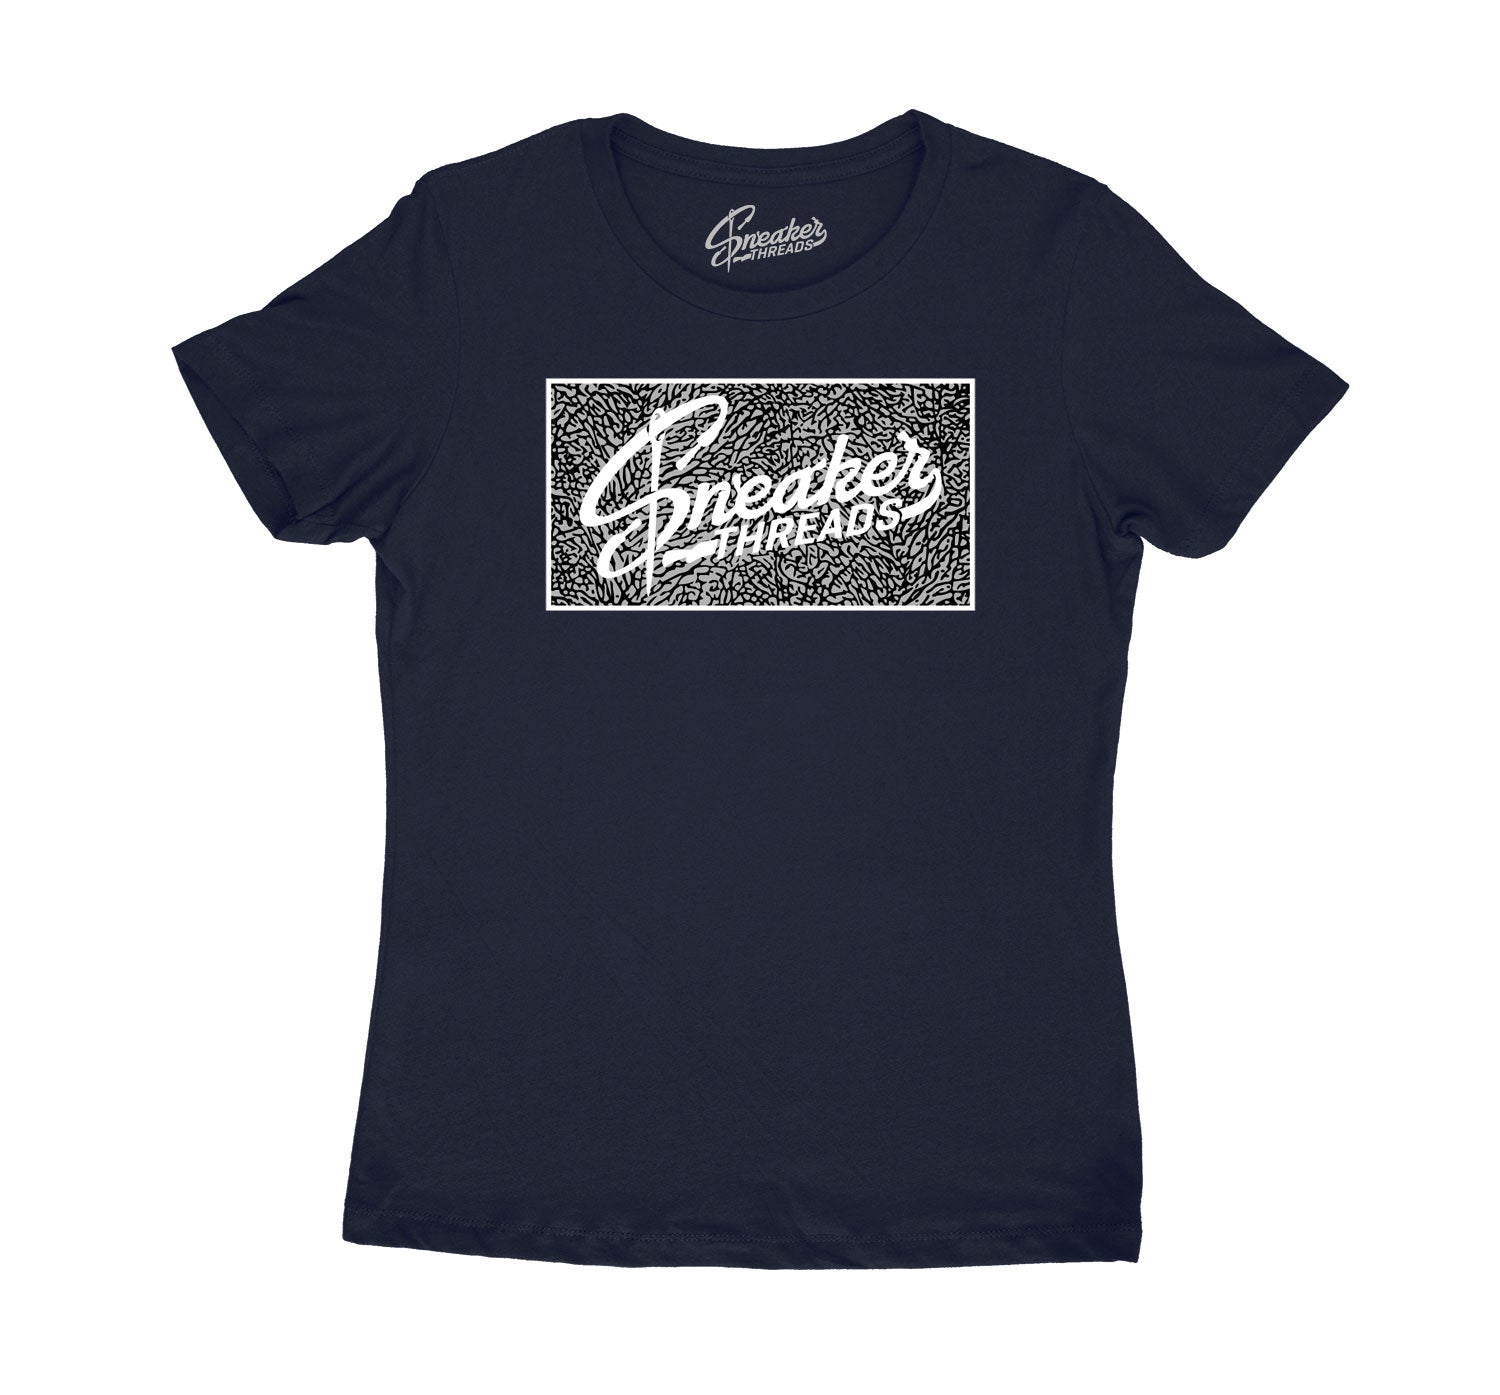 Sneaker collection Jordan 3 midnight navy sneaker collection matching womens tees